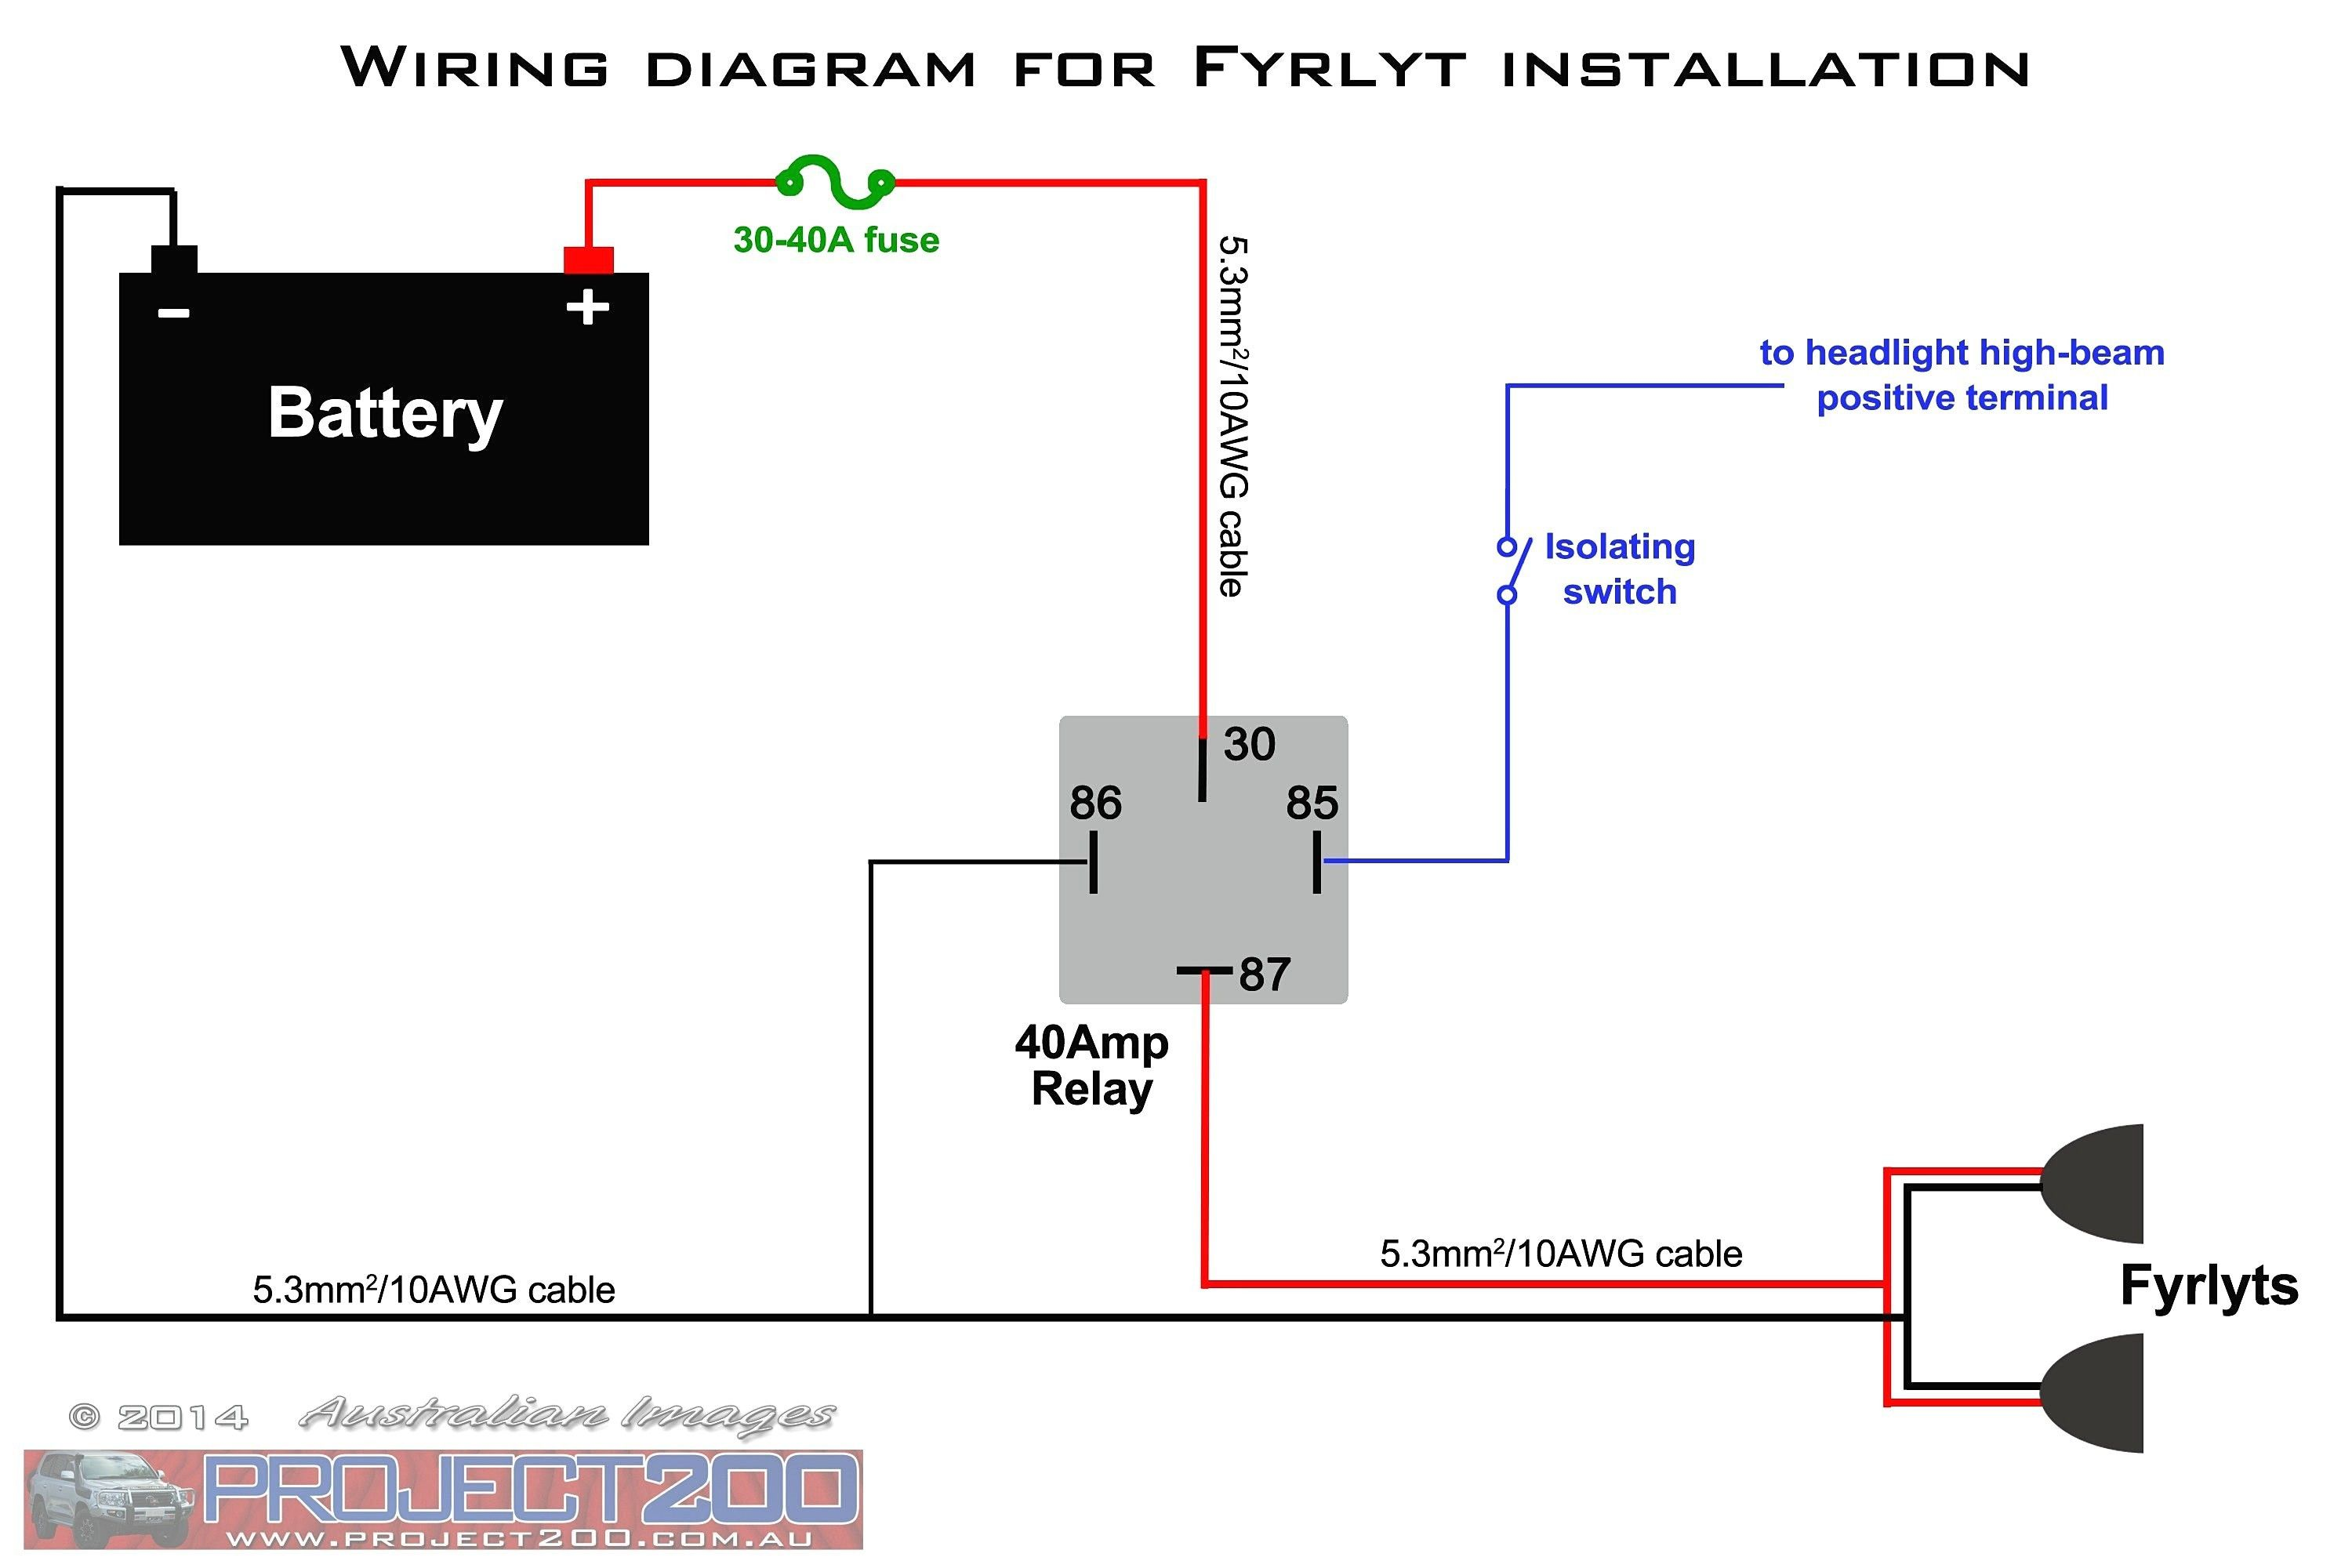 Led 4 Pin Wiring Diagram - Service Repair Manual  Pin Momentary Contact Switch Wiring Diagram on